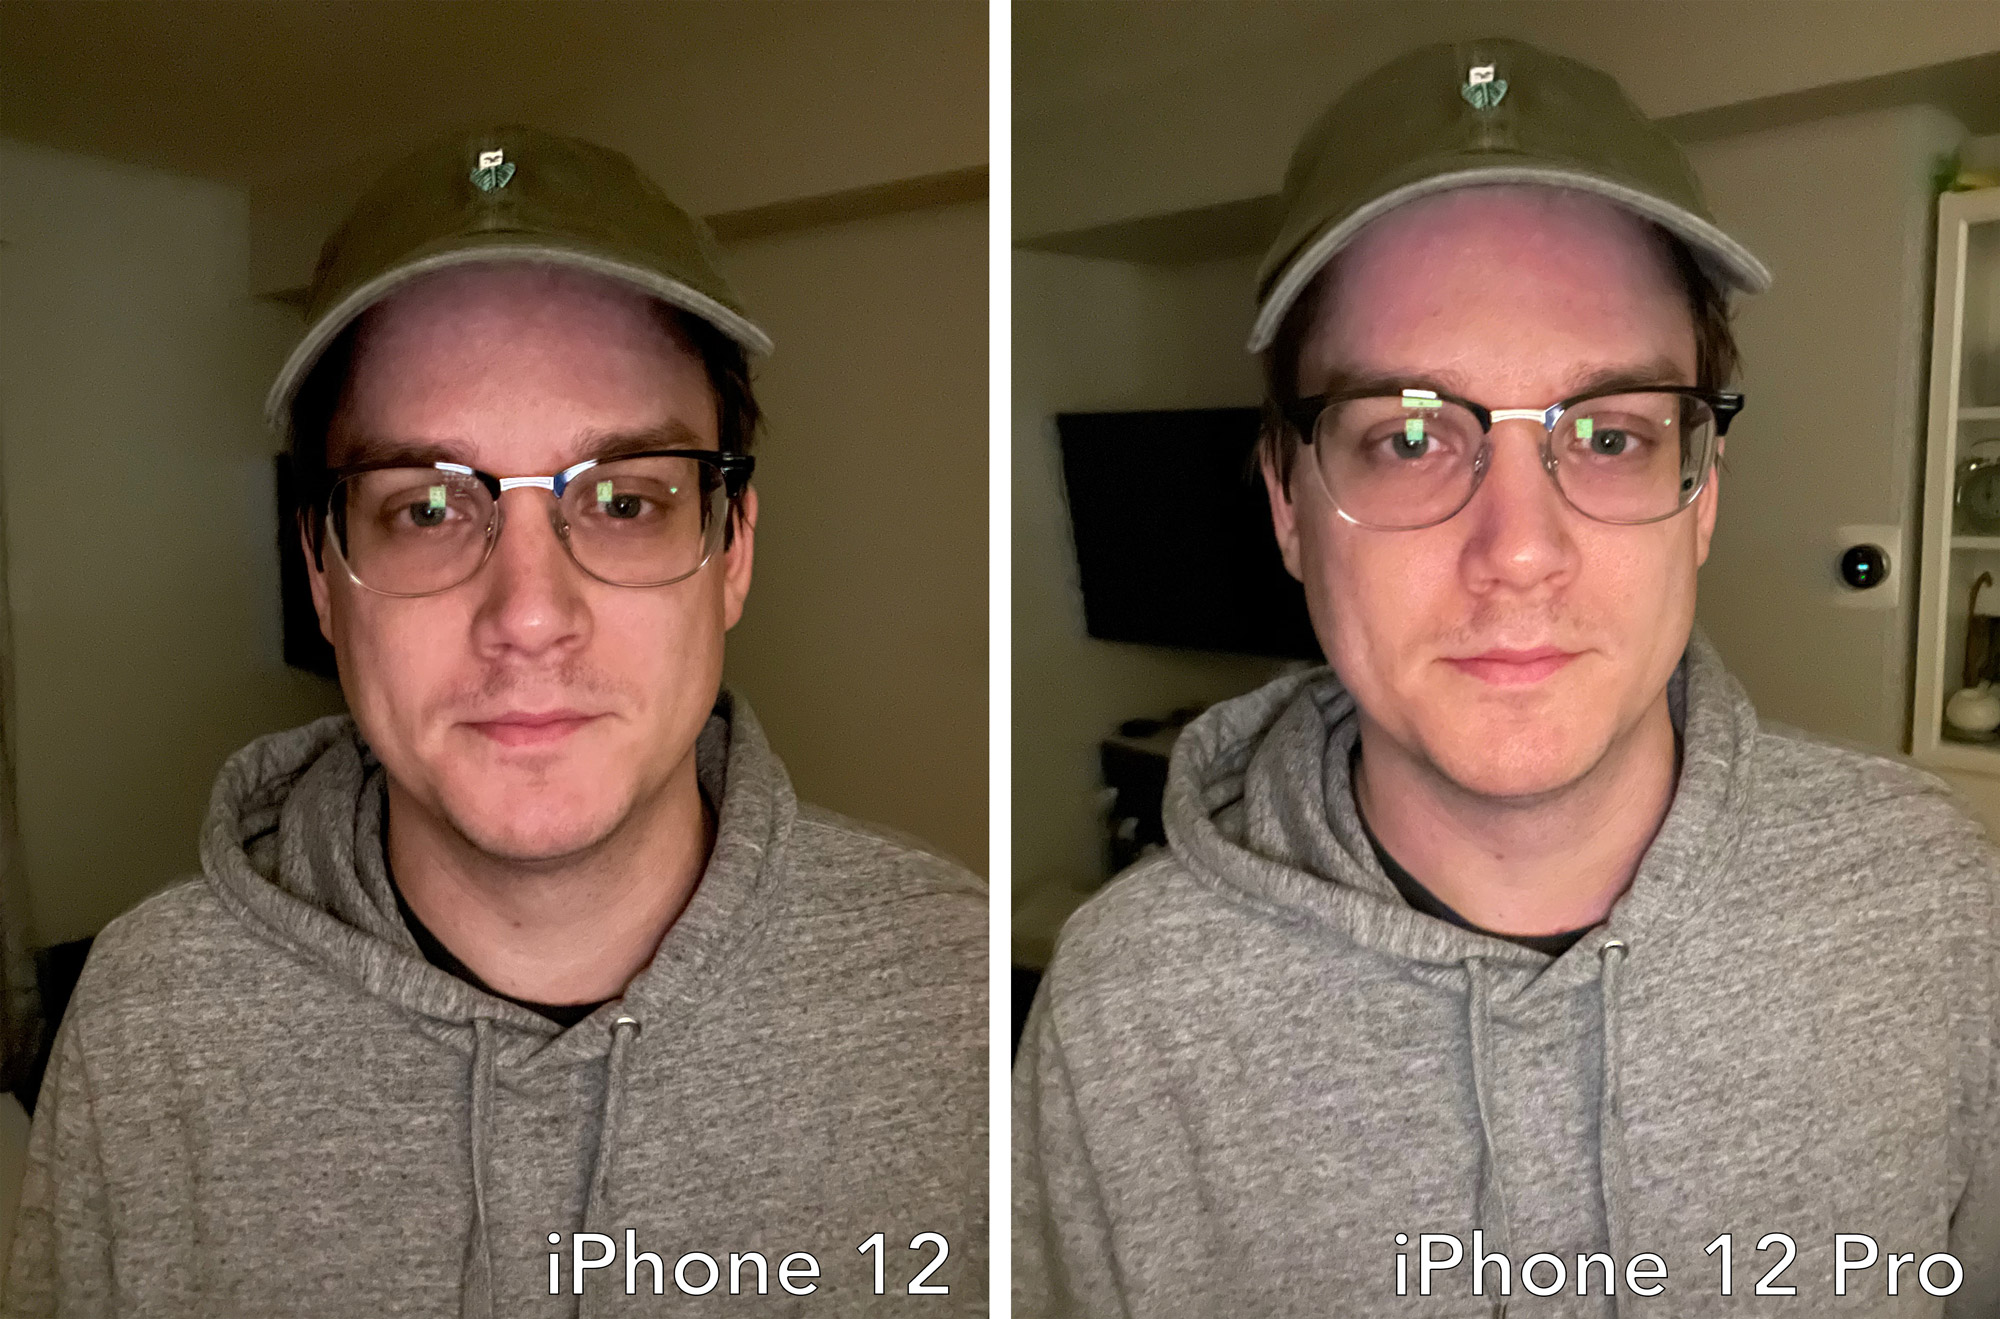 iPhone 12 selfie shooter comparison